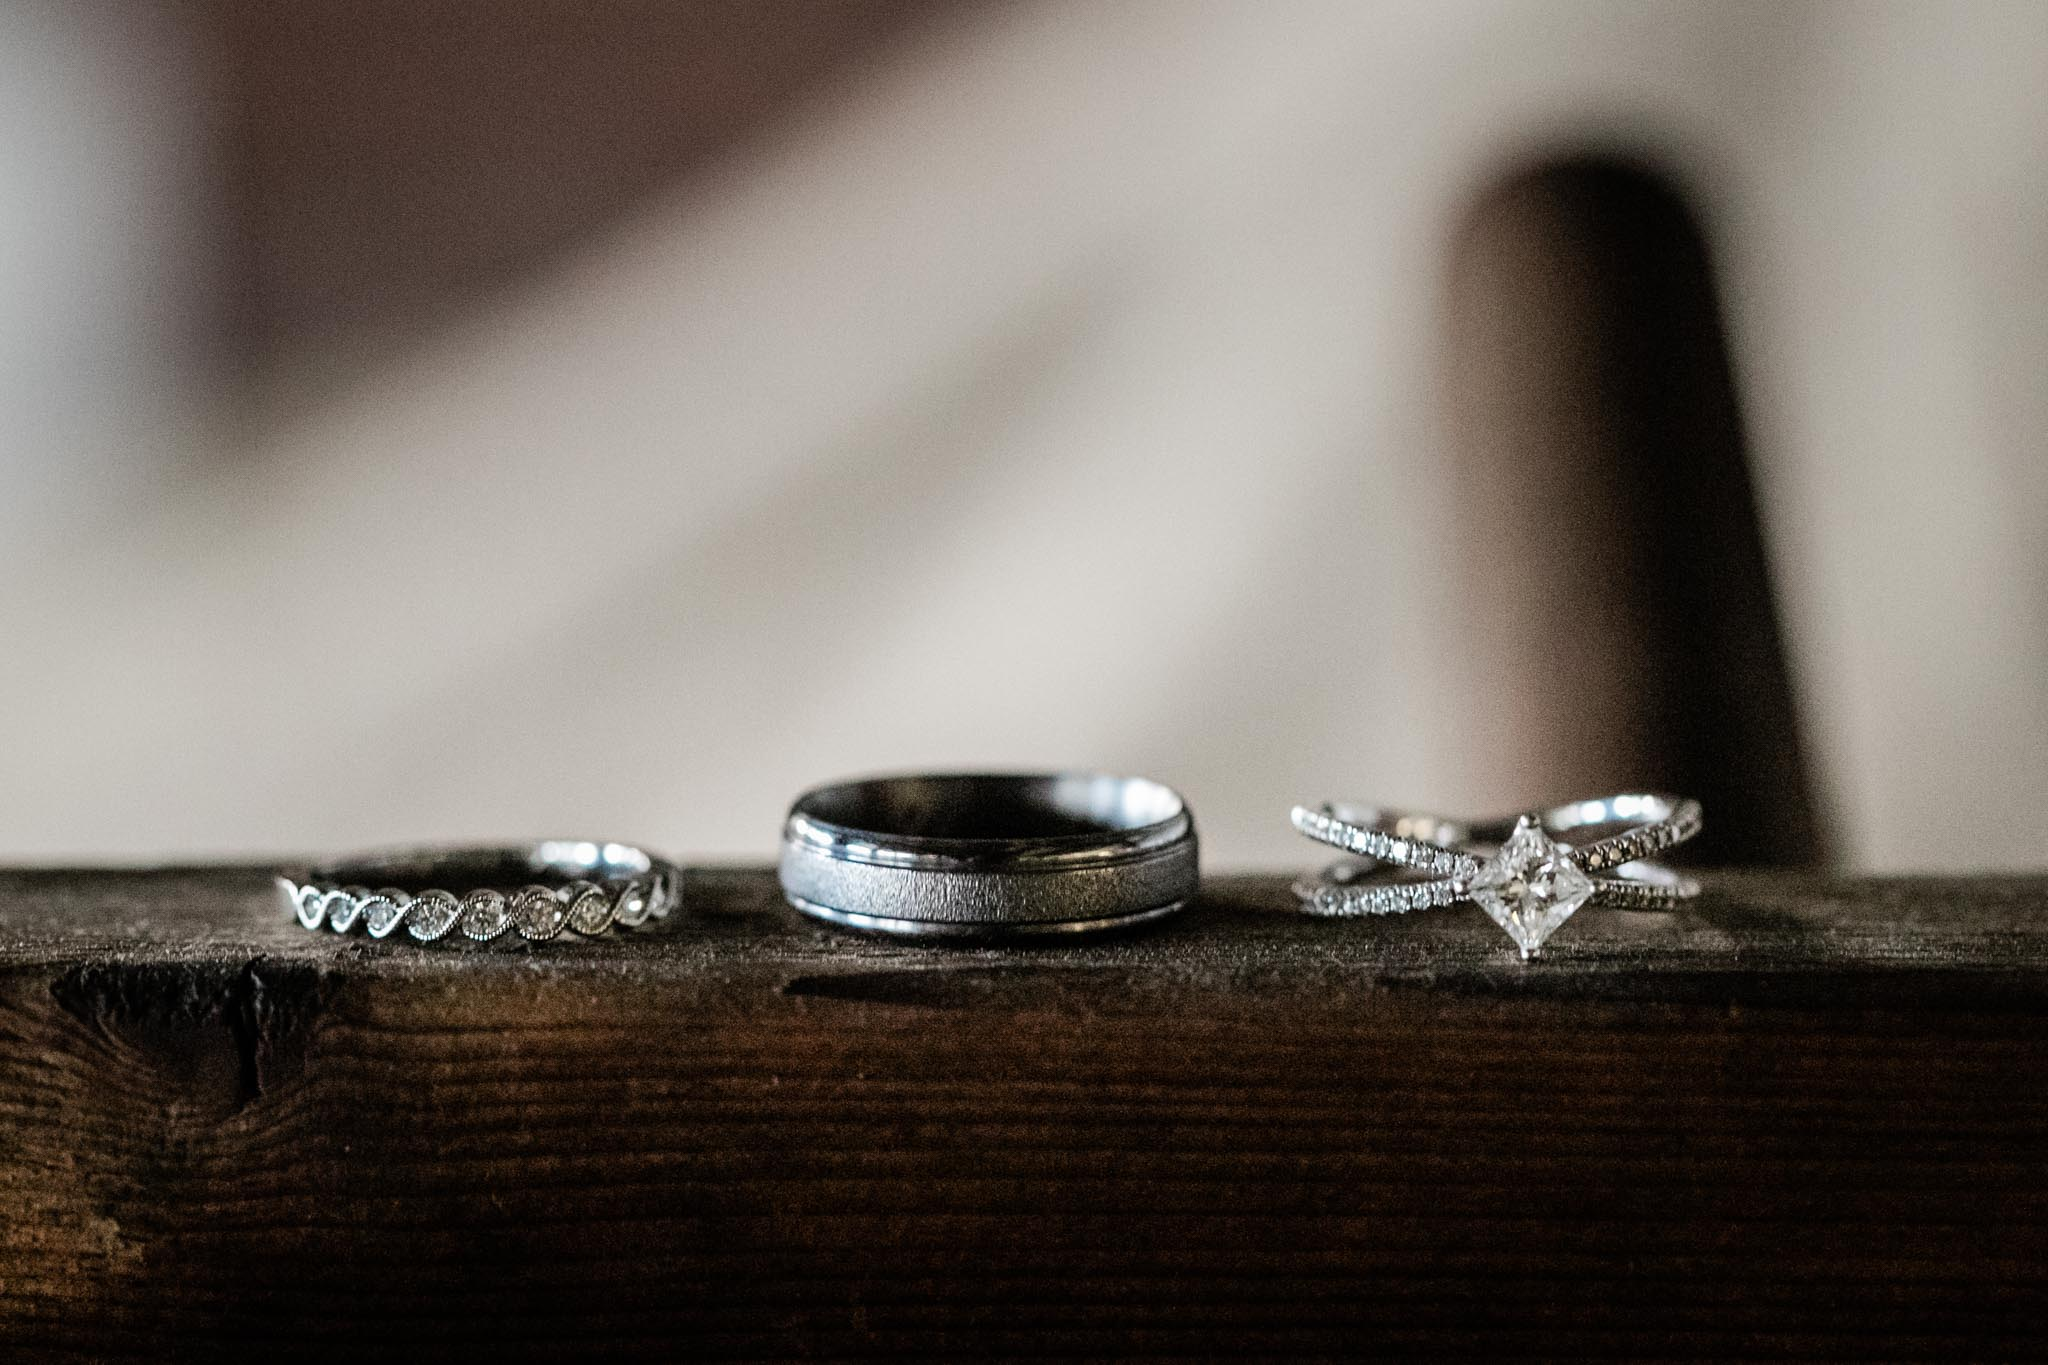 Haw River Ballroom Wedding | Durham Photographer | By G. Lin Photography | Wedding rings close up on wooden shelf